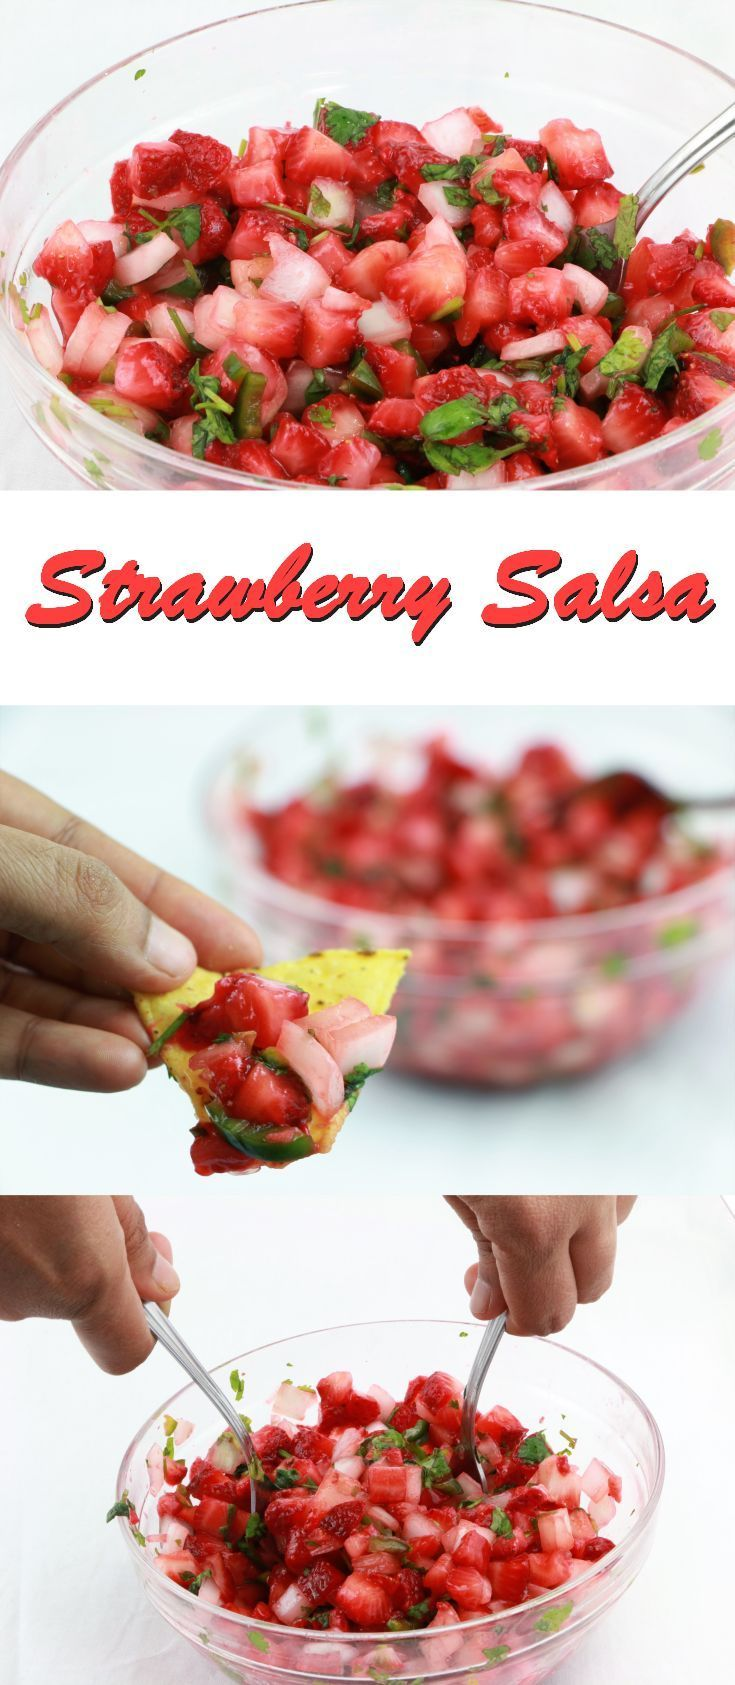 Strawberry Salsa.... The Strawberry Salsa recipe that just screams summertime. A Super easy Strawberry Salsa Recipe that makes a delicious appetizer or snack. With just few ingredients, there is zero excuse not to make a batch this weekend. I hope you enjoy this delightful salsa. Grab A tortilla chip and dine in!!!!